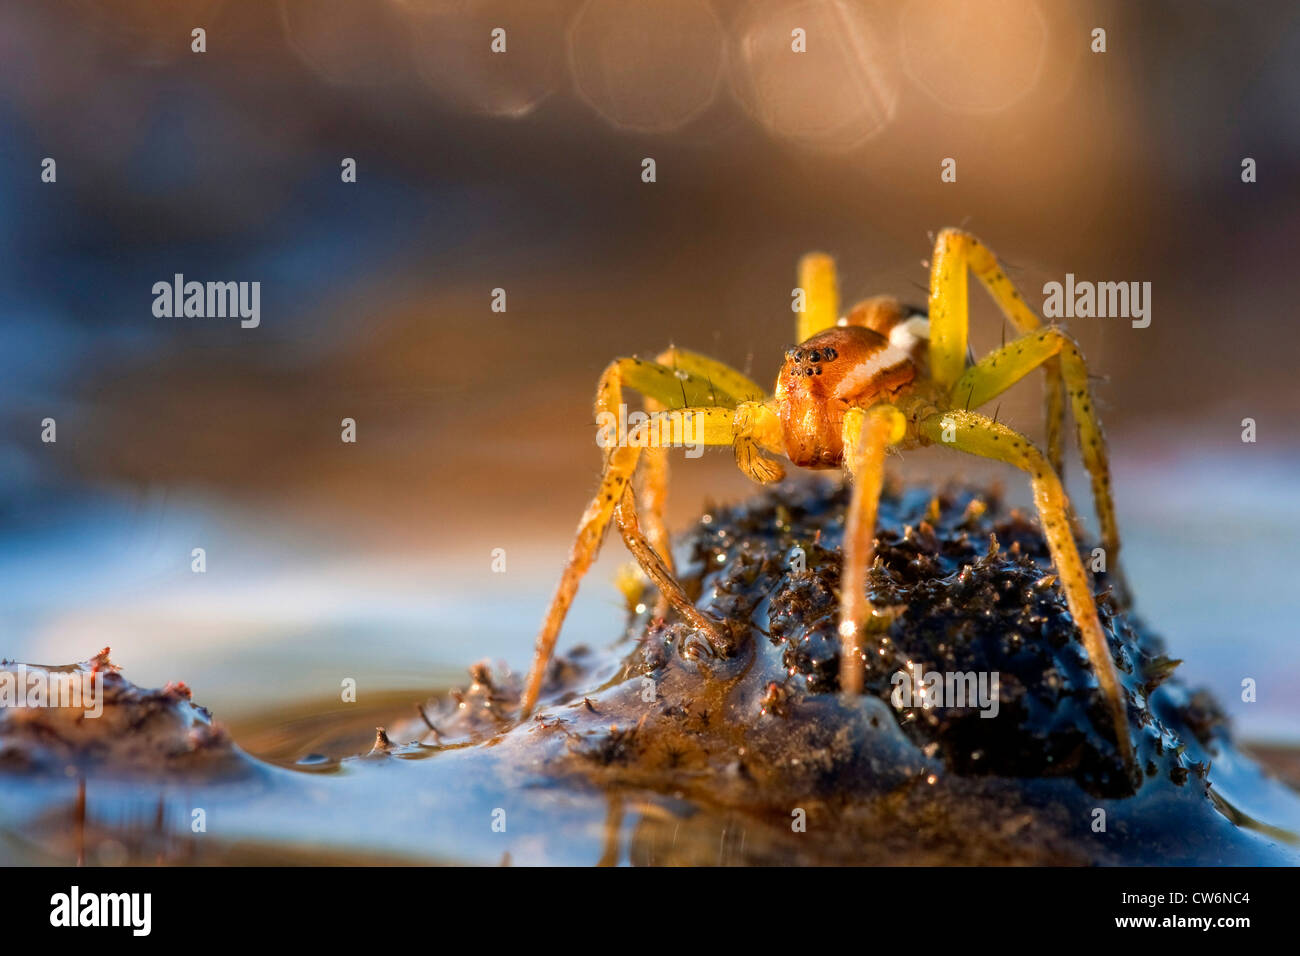 Fimbriate Fishing Spider Dolomedes Fimbriatus Sitting On A Mossy Stock Photo 49935652 Alamy